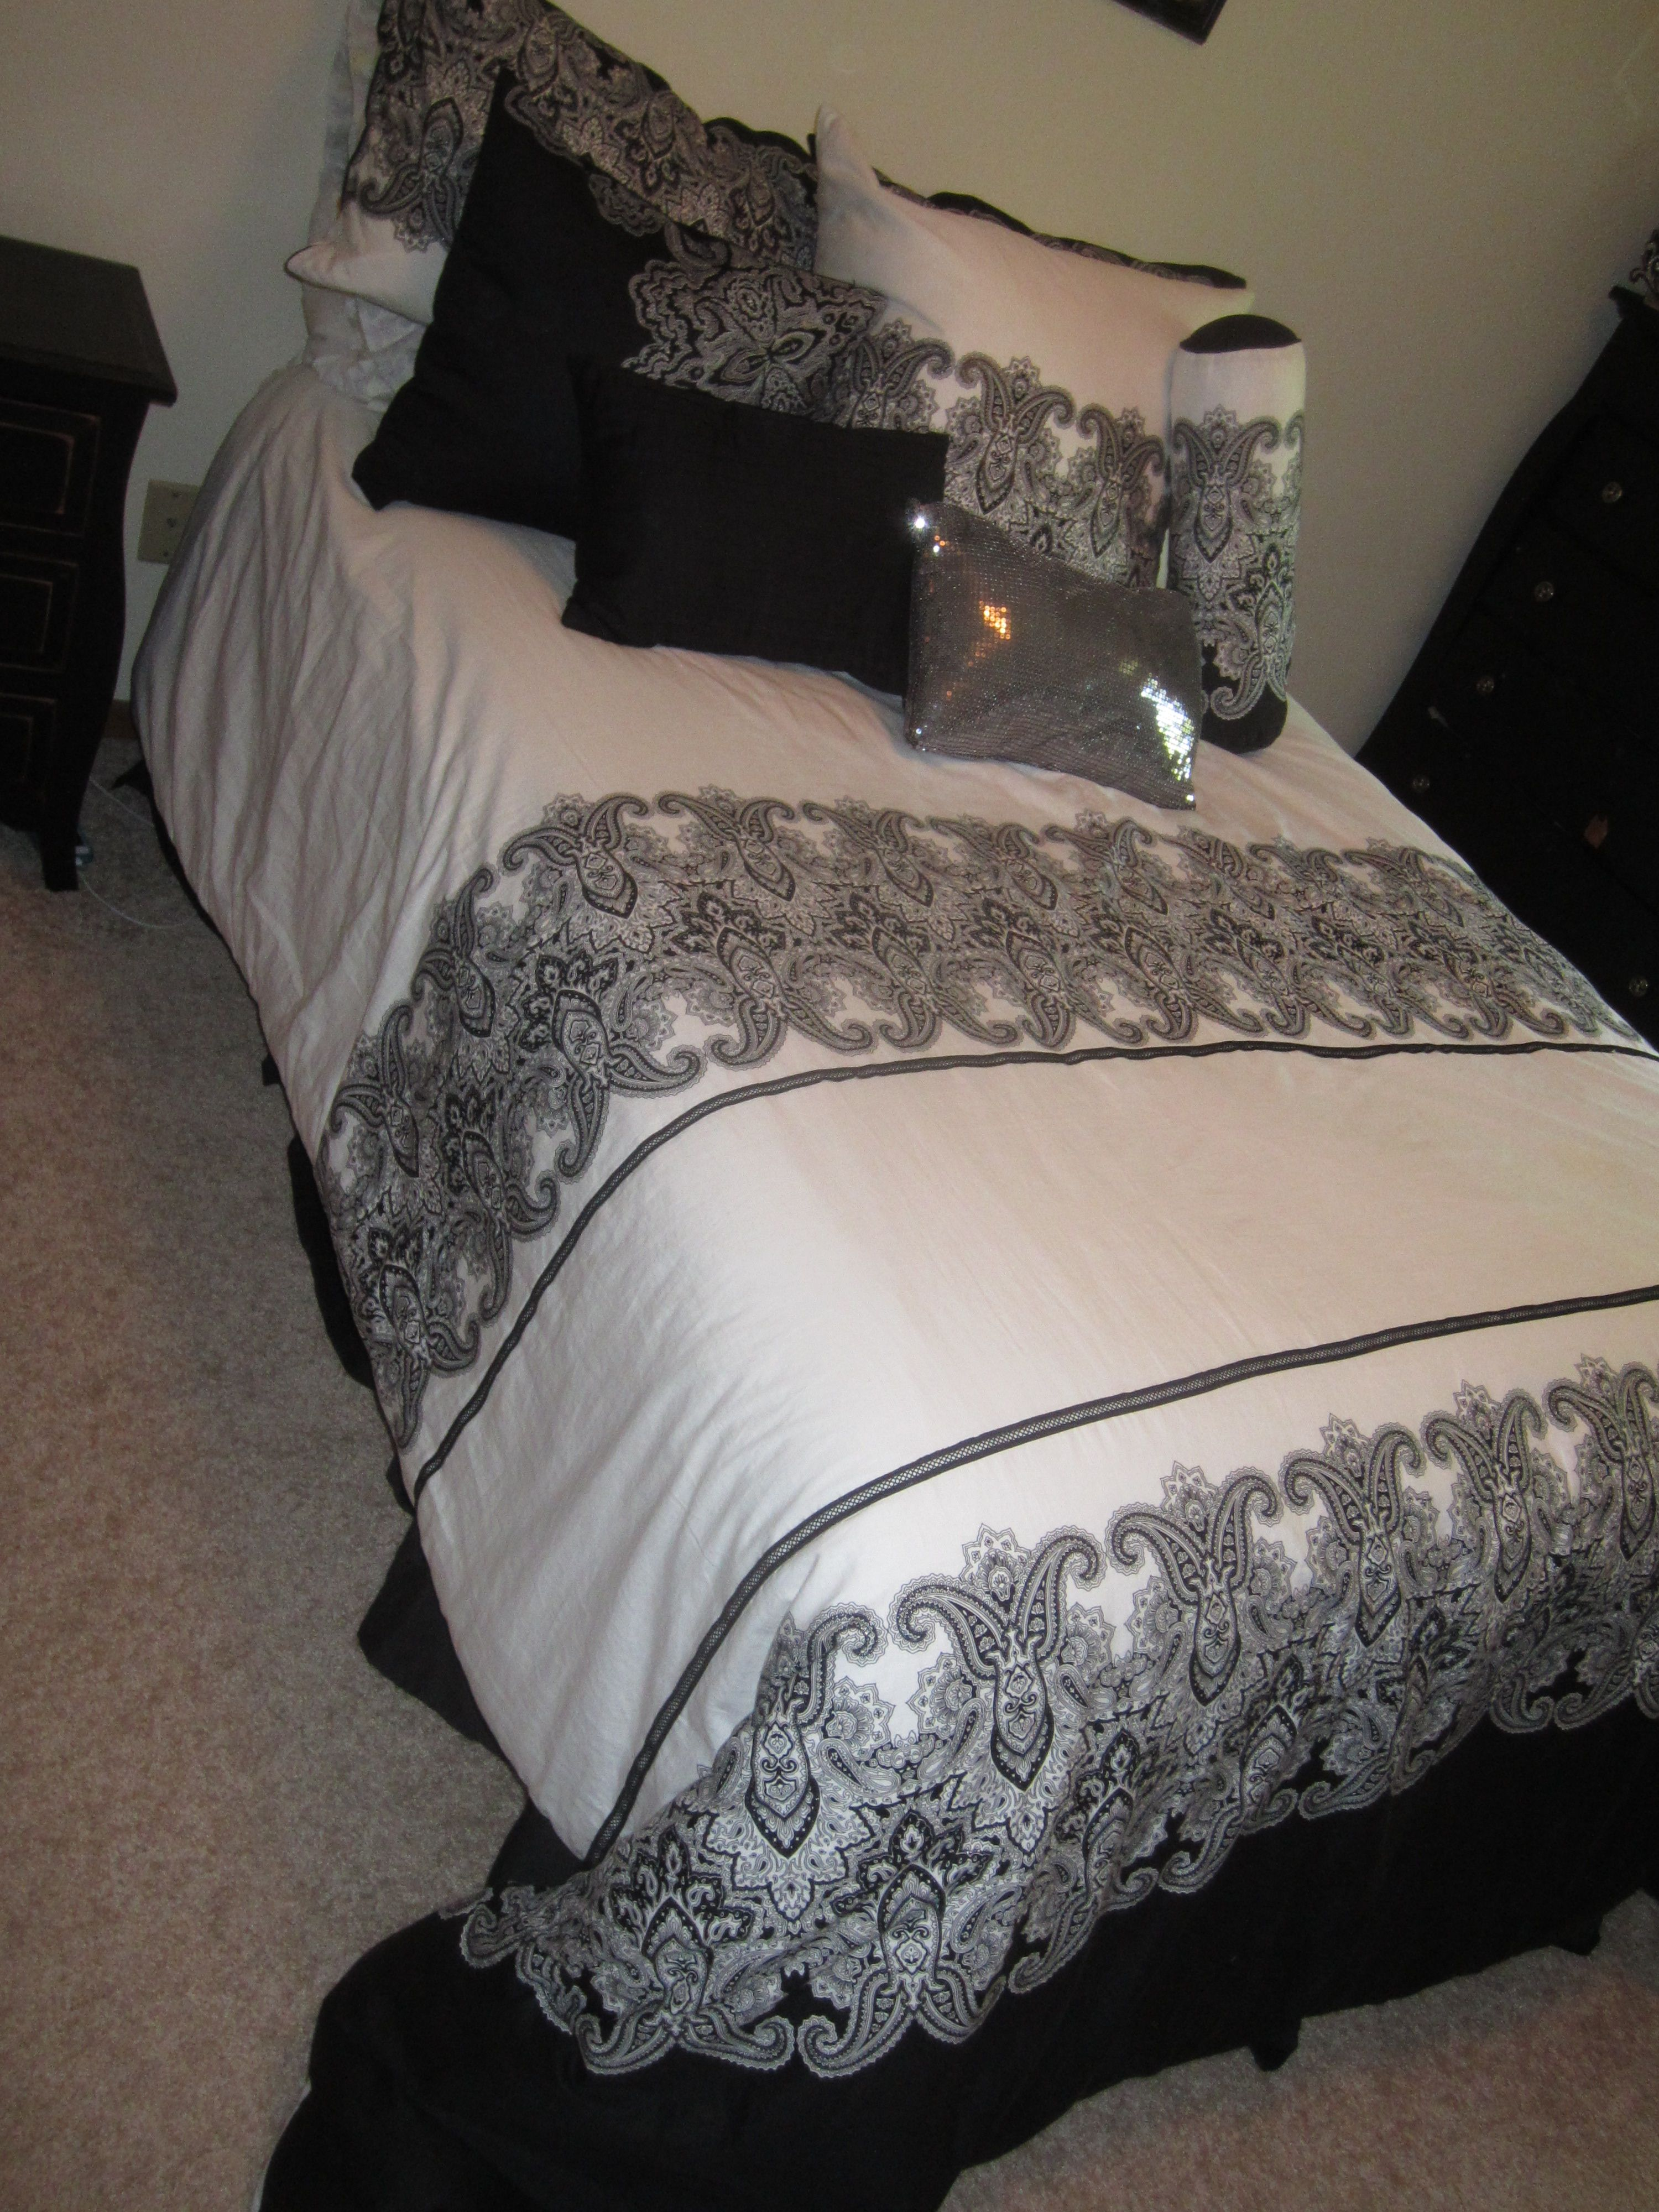 of home bed artisan marvelous furniture tj bedding de tahari full frames quilt luxe new size elegant headboards magnificent maxx inspirational bedroom does